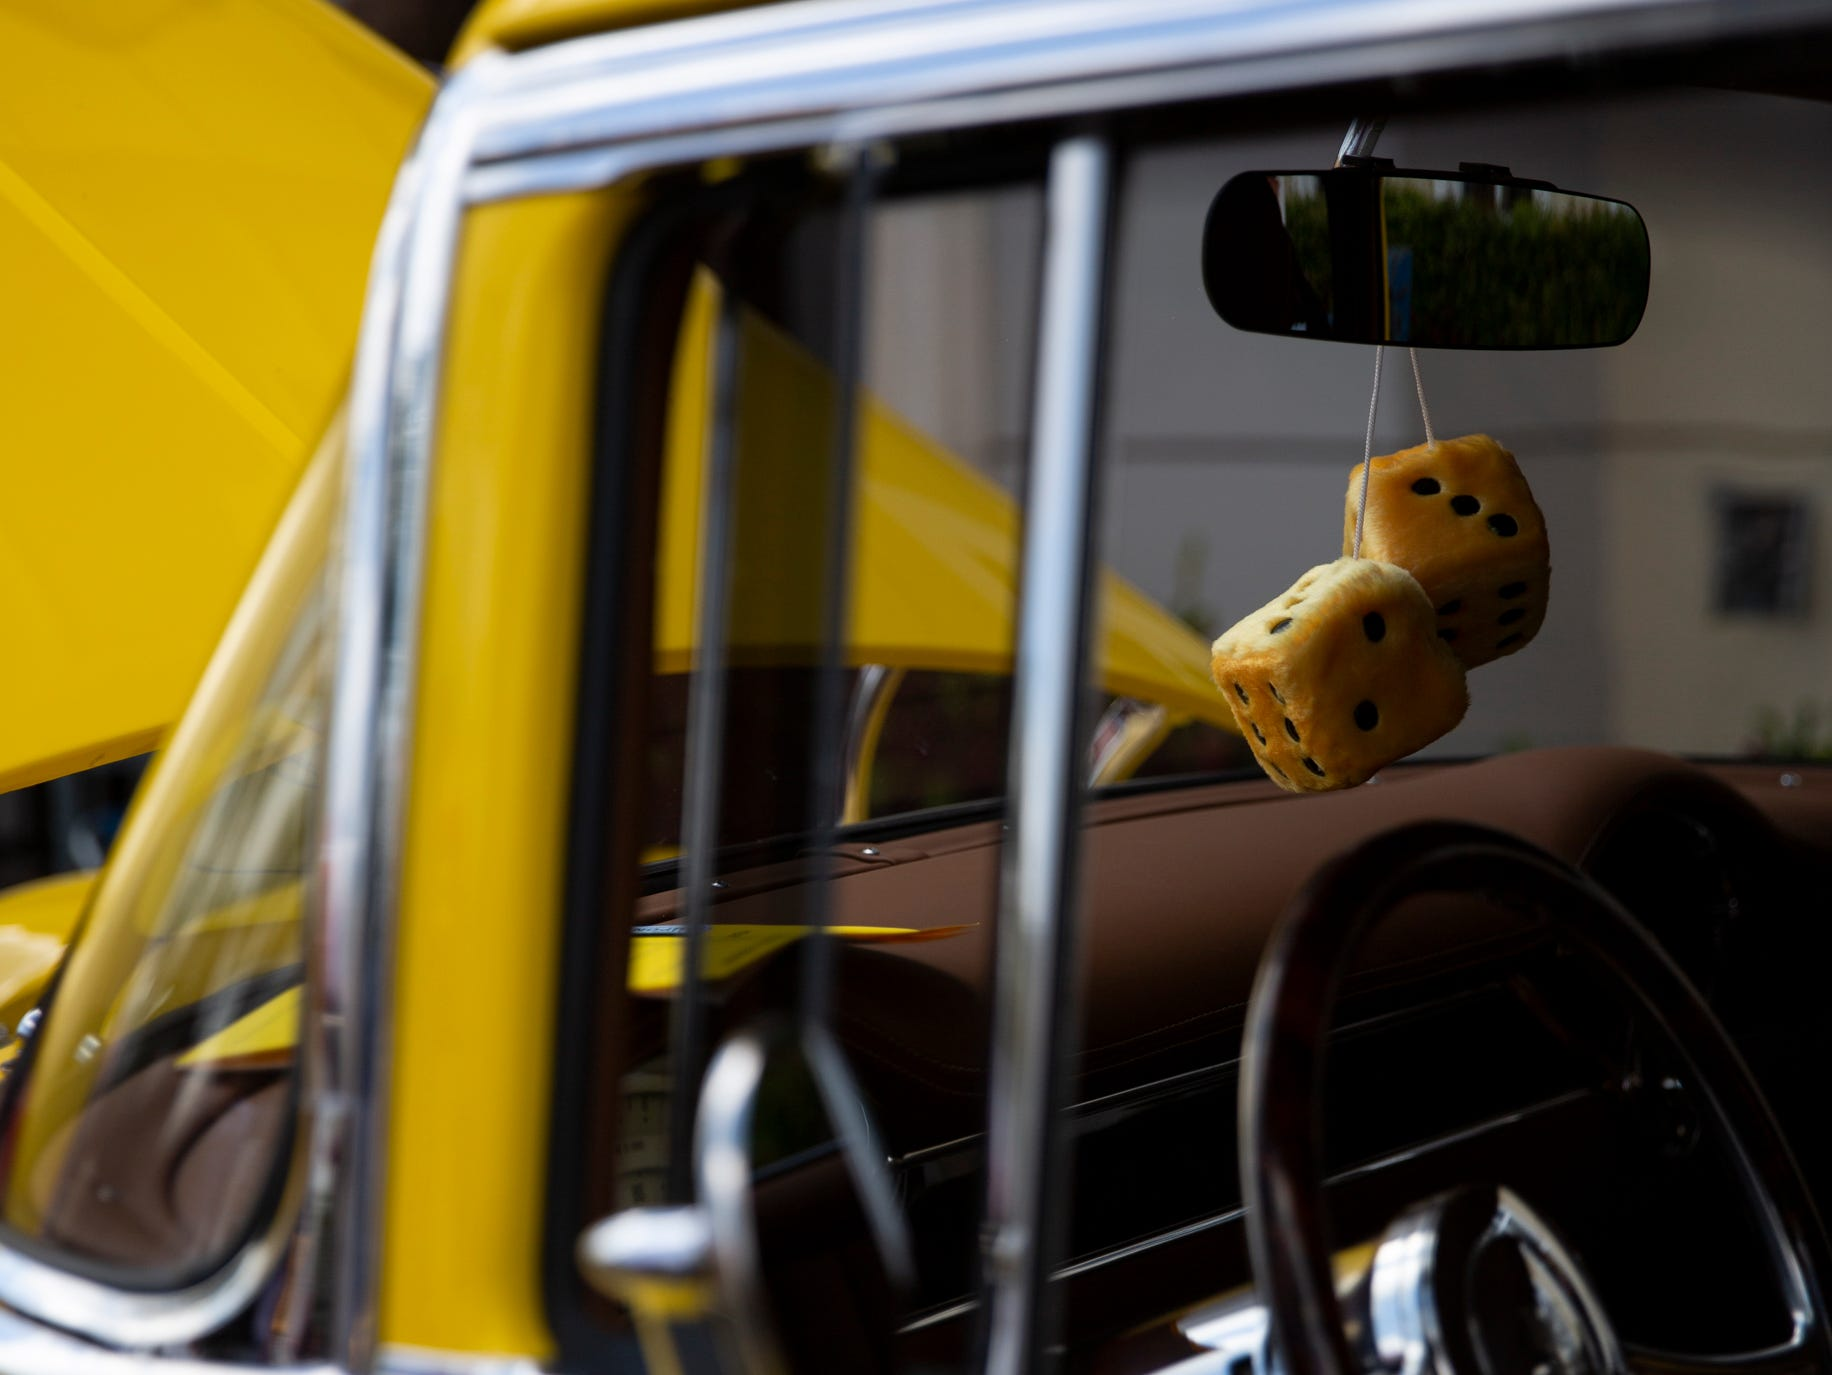 Fuzzy dice hang from the rearview mirror of a 1955 Chevrolet Bel-Air during the West Coast Muscle Car Club's 15th annual car and truck show at the Galleria Shoppes at Vanderbilt in Naples on Sunday, March 10, 2019.